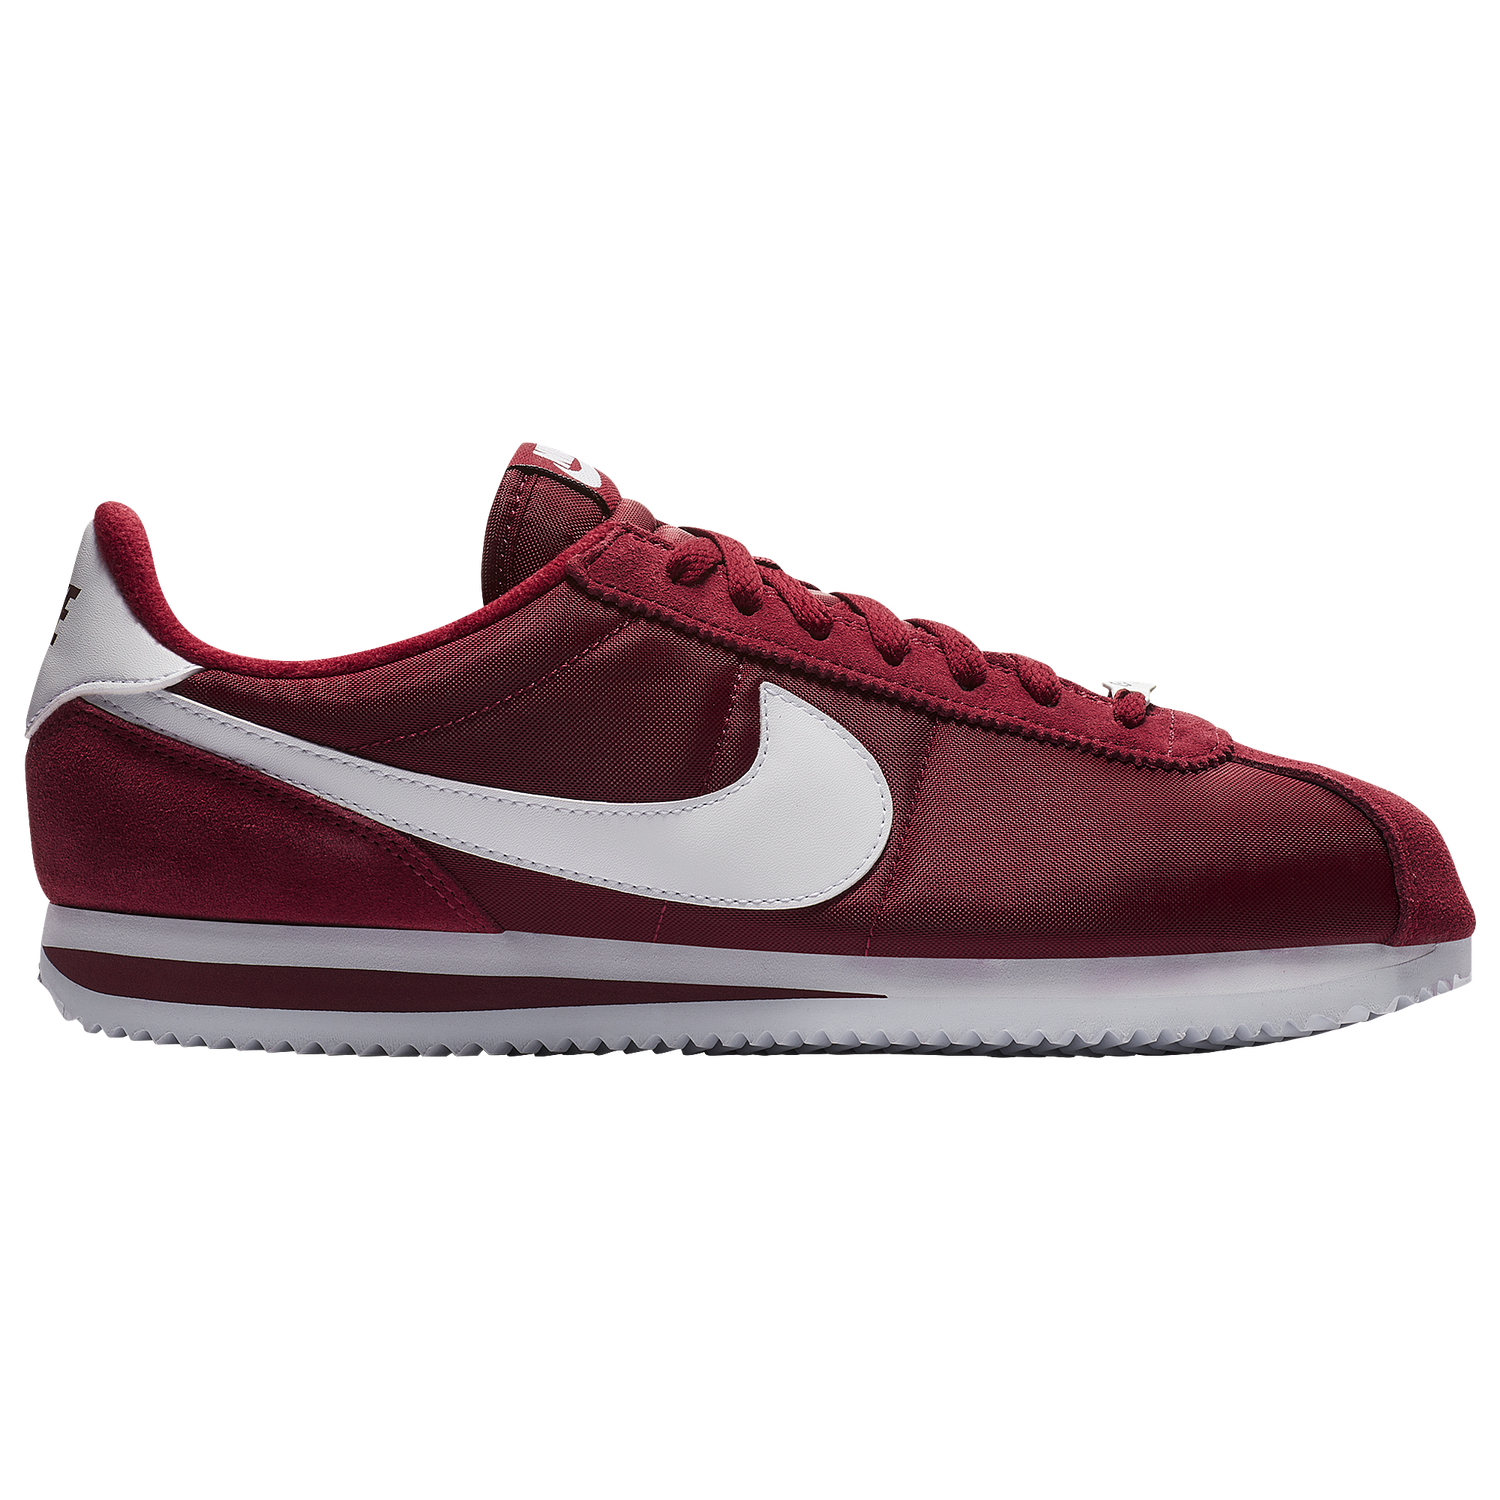 45a783edc430 where to buy all red nike cortez mens 3b4f2 65652